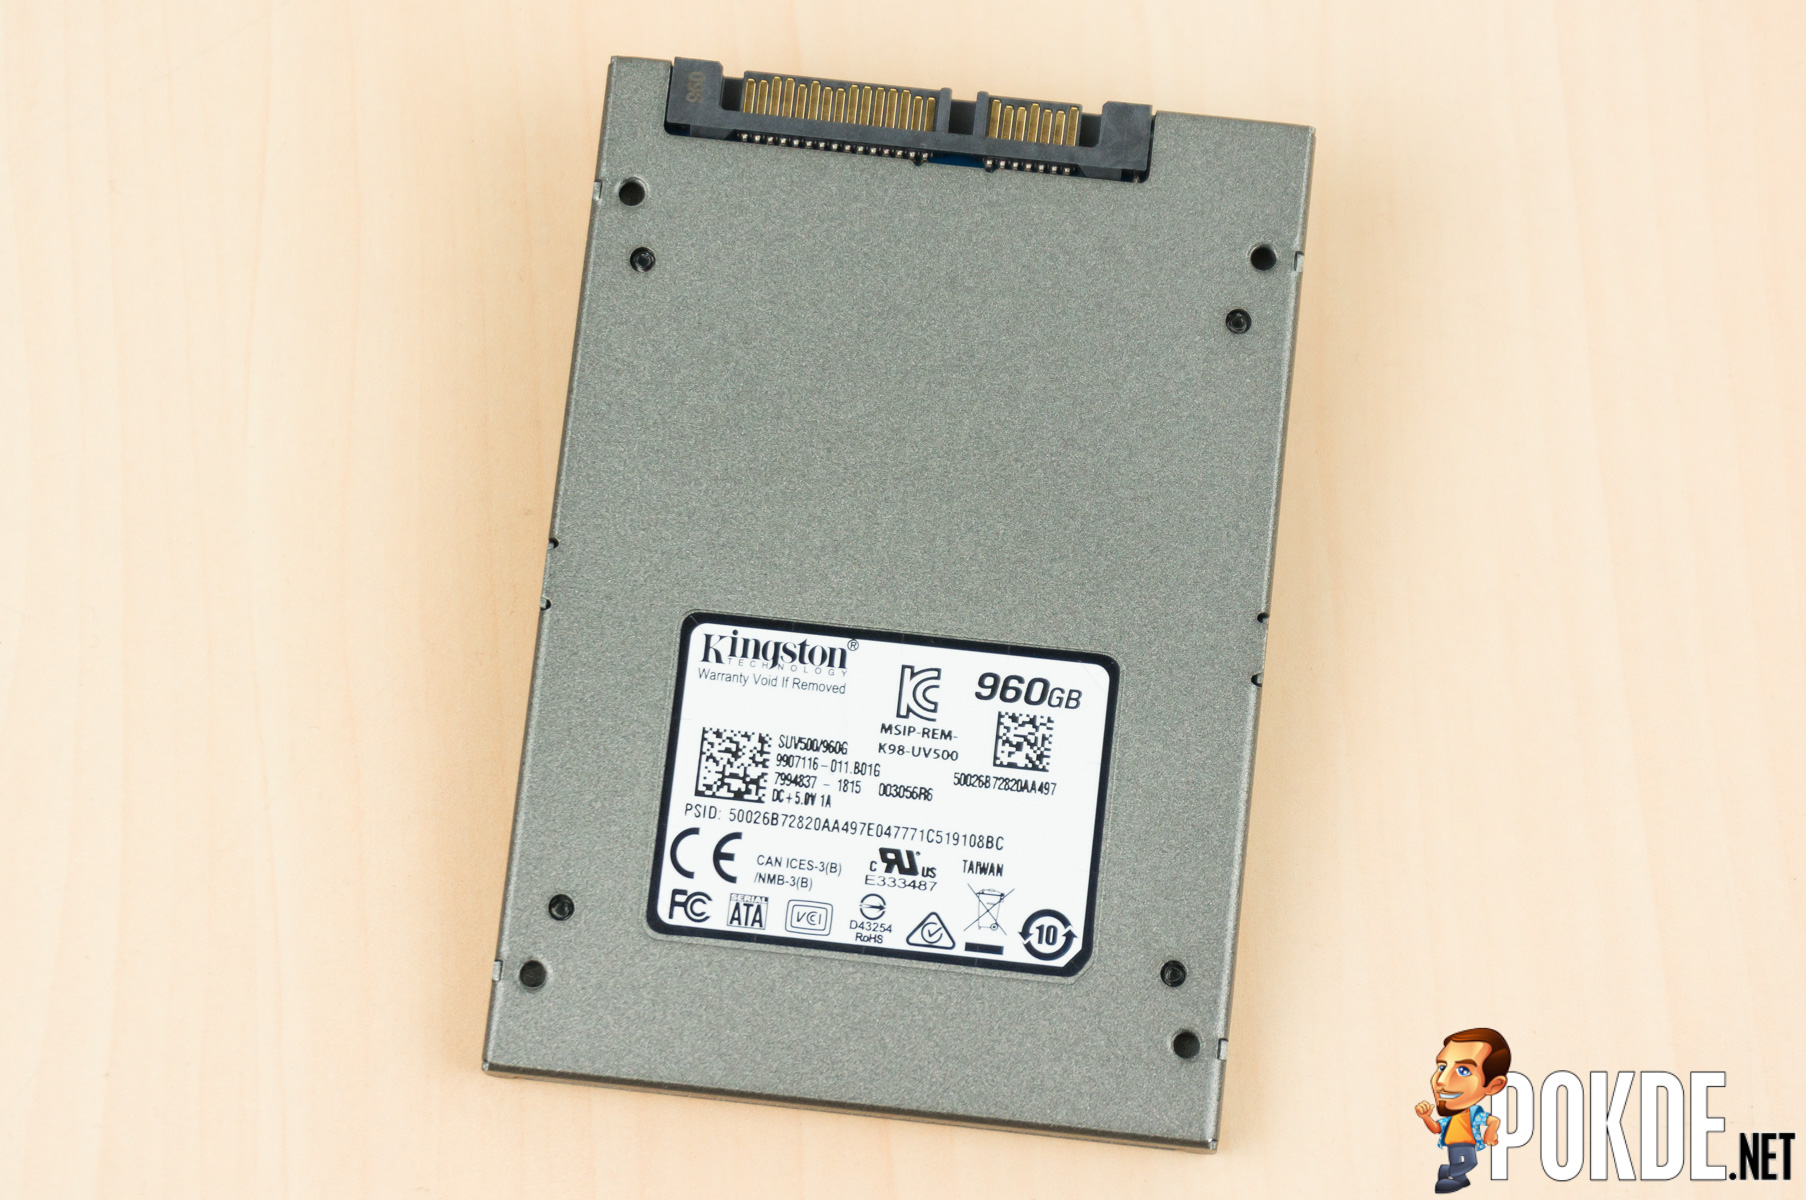 Kingston Uv500 960gb 2 5 Ssd Review 3d Nand Without Breaking The